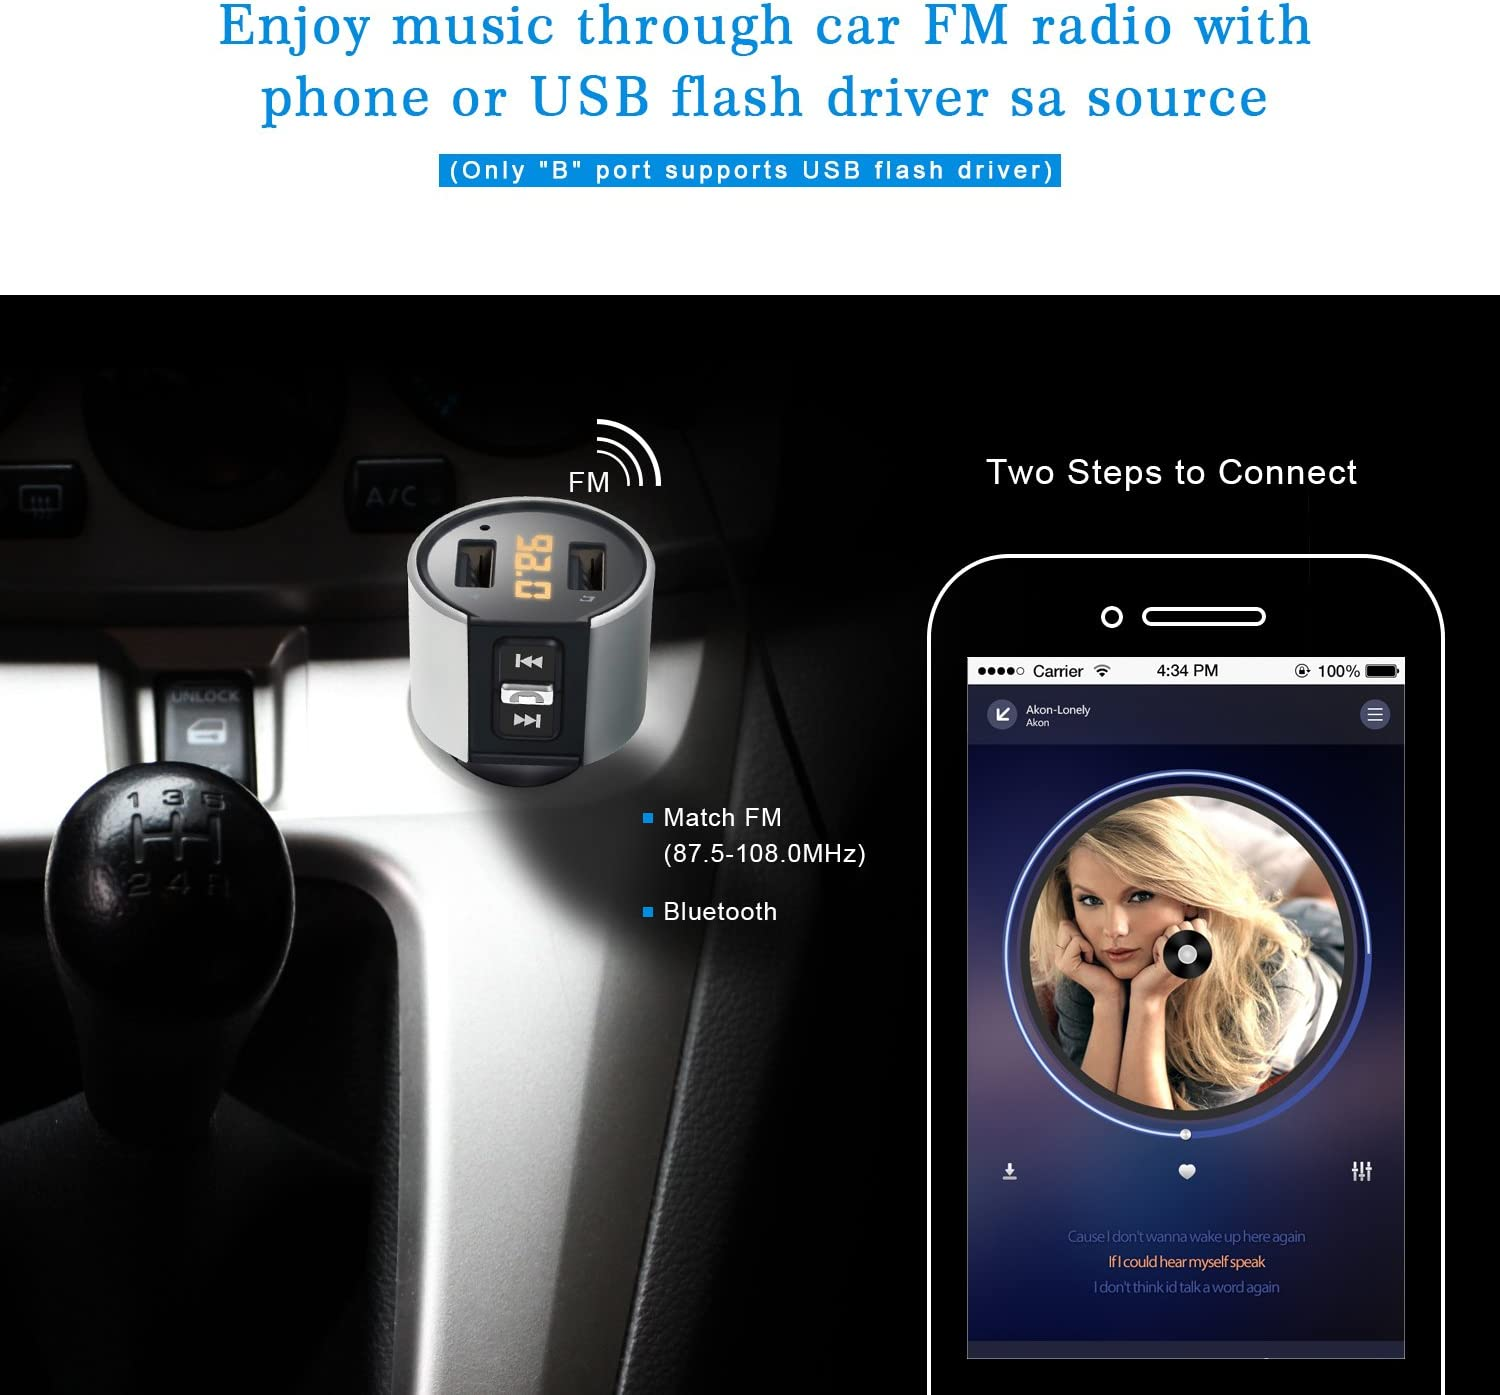 Wireless Bluetooth FM Radio Adapter Car Kit with Hands-Free Calling and 2 Ports USB Charger 5V//2.4A/&1A. ZEEPORTE Bluetooth FM Transmitter for Car